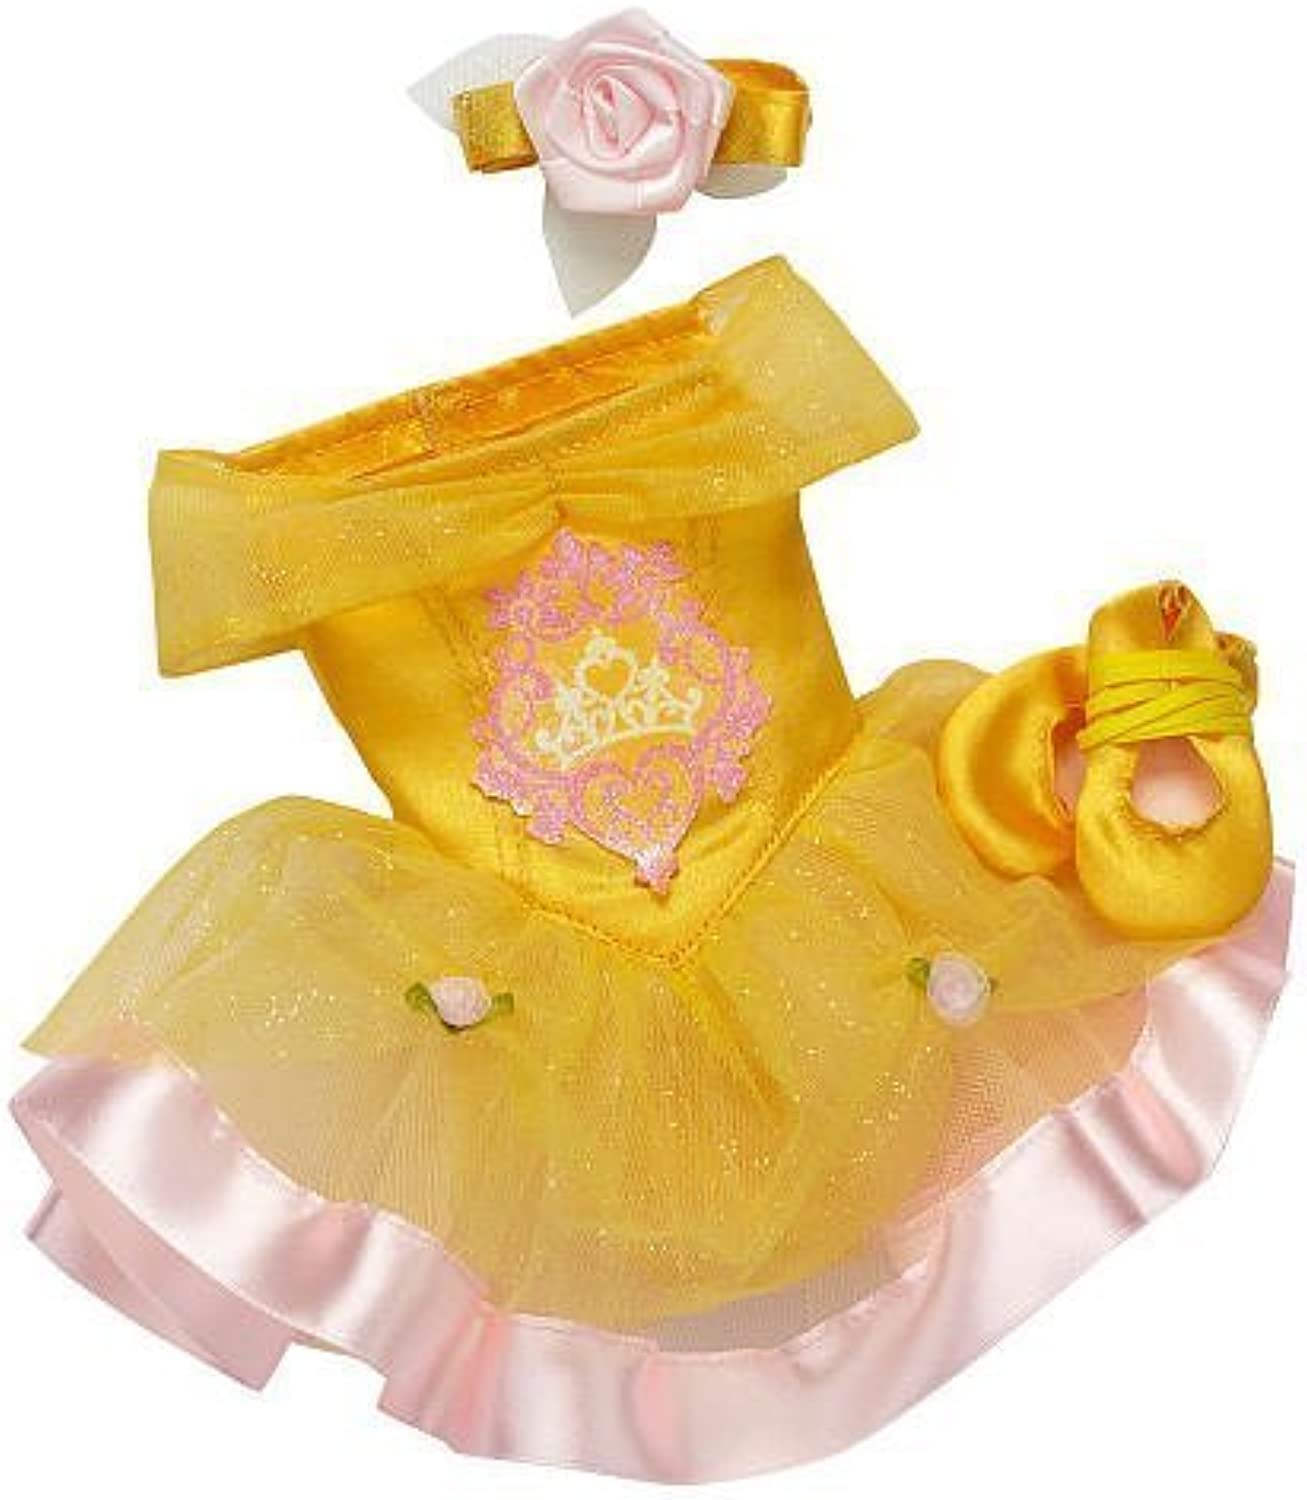 Disney Princess & Me Ballet Doll Outfit and Toe schuhe - Belle by Disney